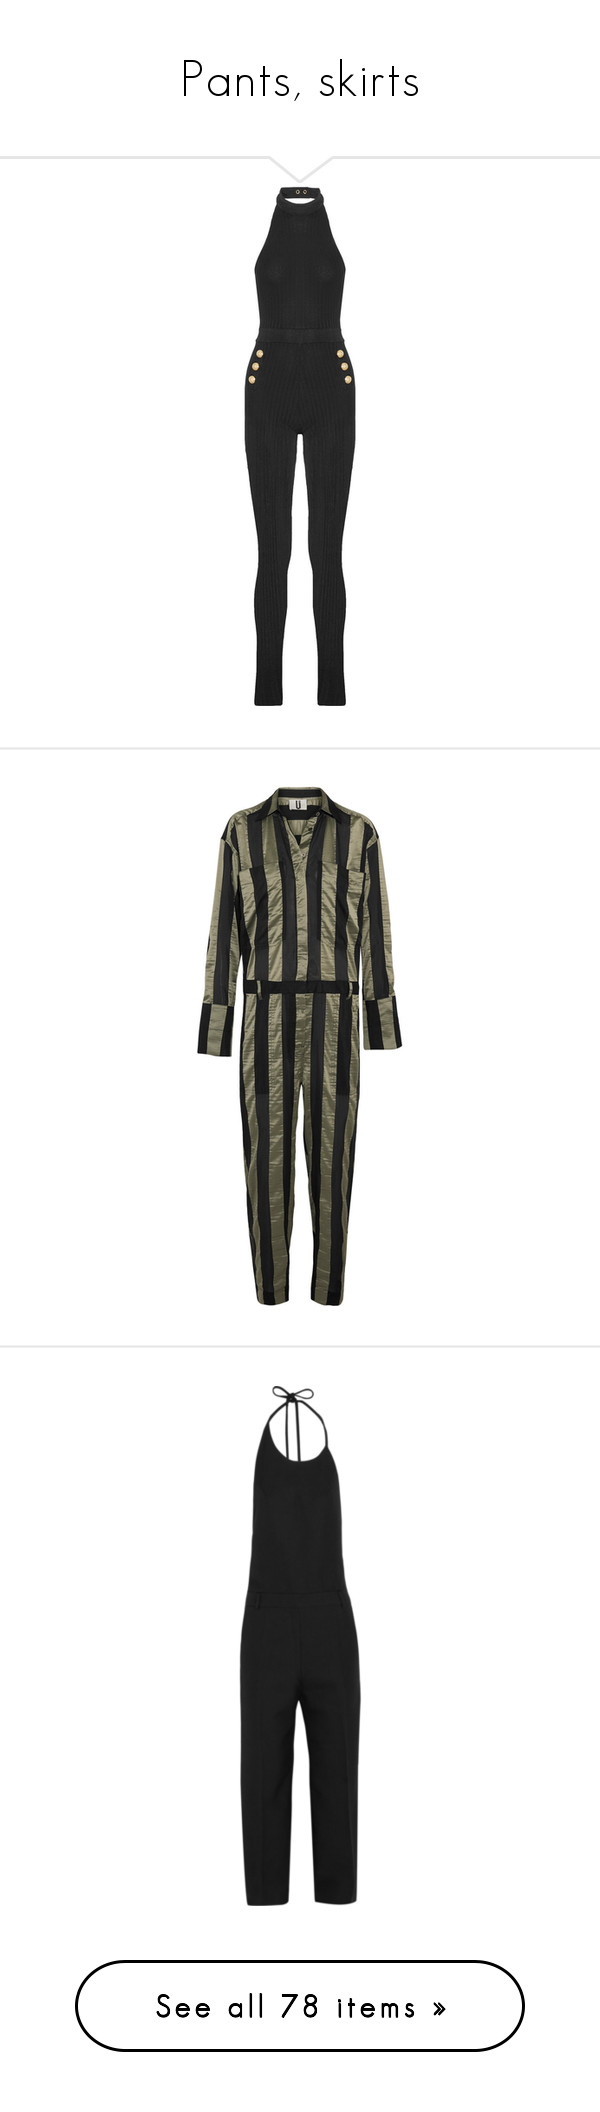 """""""Pants, skirts"""" by bliznec ❤ liked on Polyvore featuring jumpsuits, army green jumpsuit, olive jumpsuit, striped jumpsuit, satin jumpsuit, jump suit, topshop unique, halterneck jumpsuit, halter jumpsuit and halter tops"""